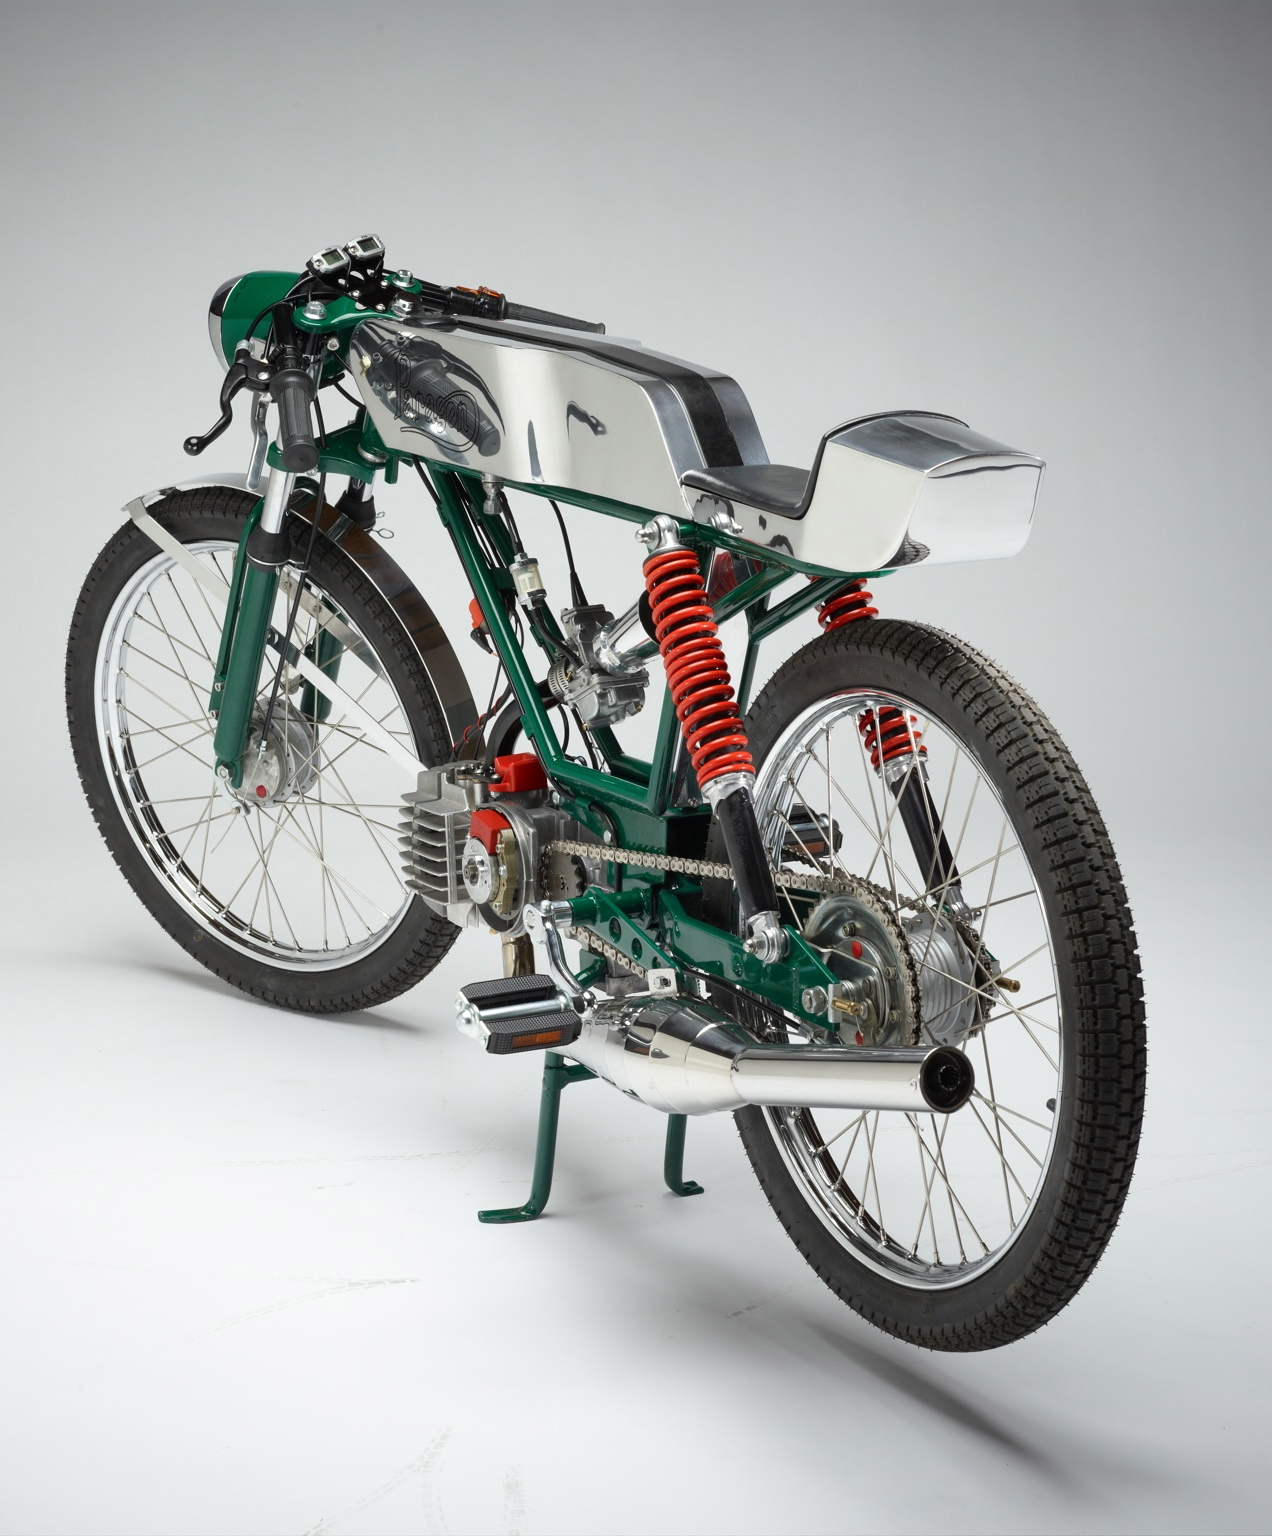 hight resolution of the paragon devin and my first motorcycle build from scratch an 80cc homage to